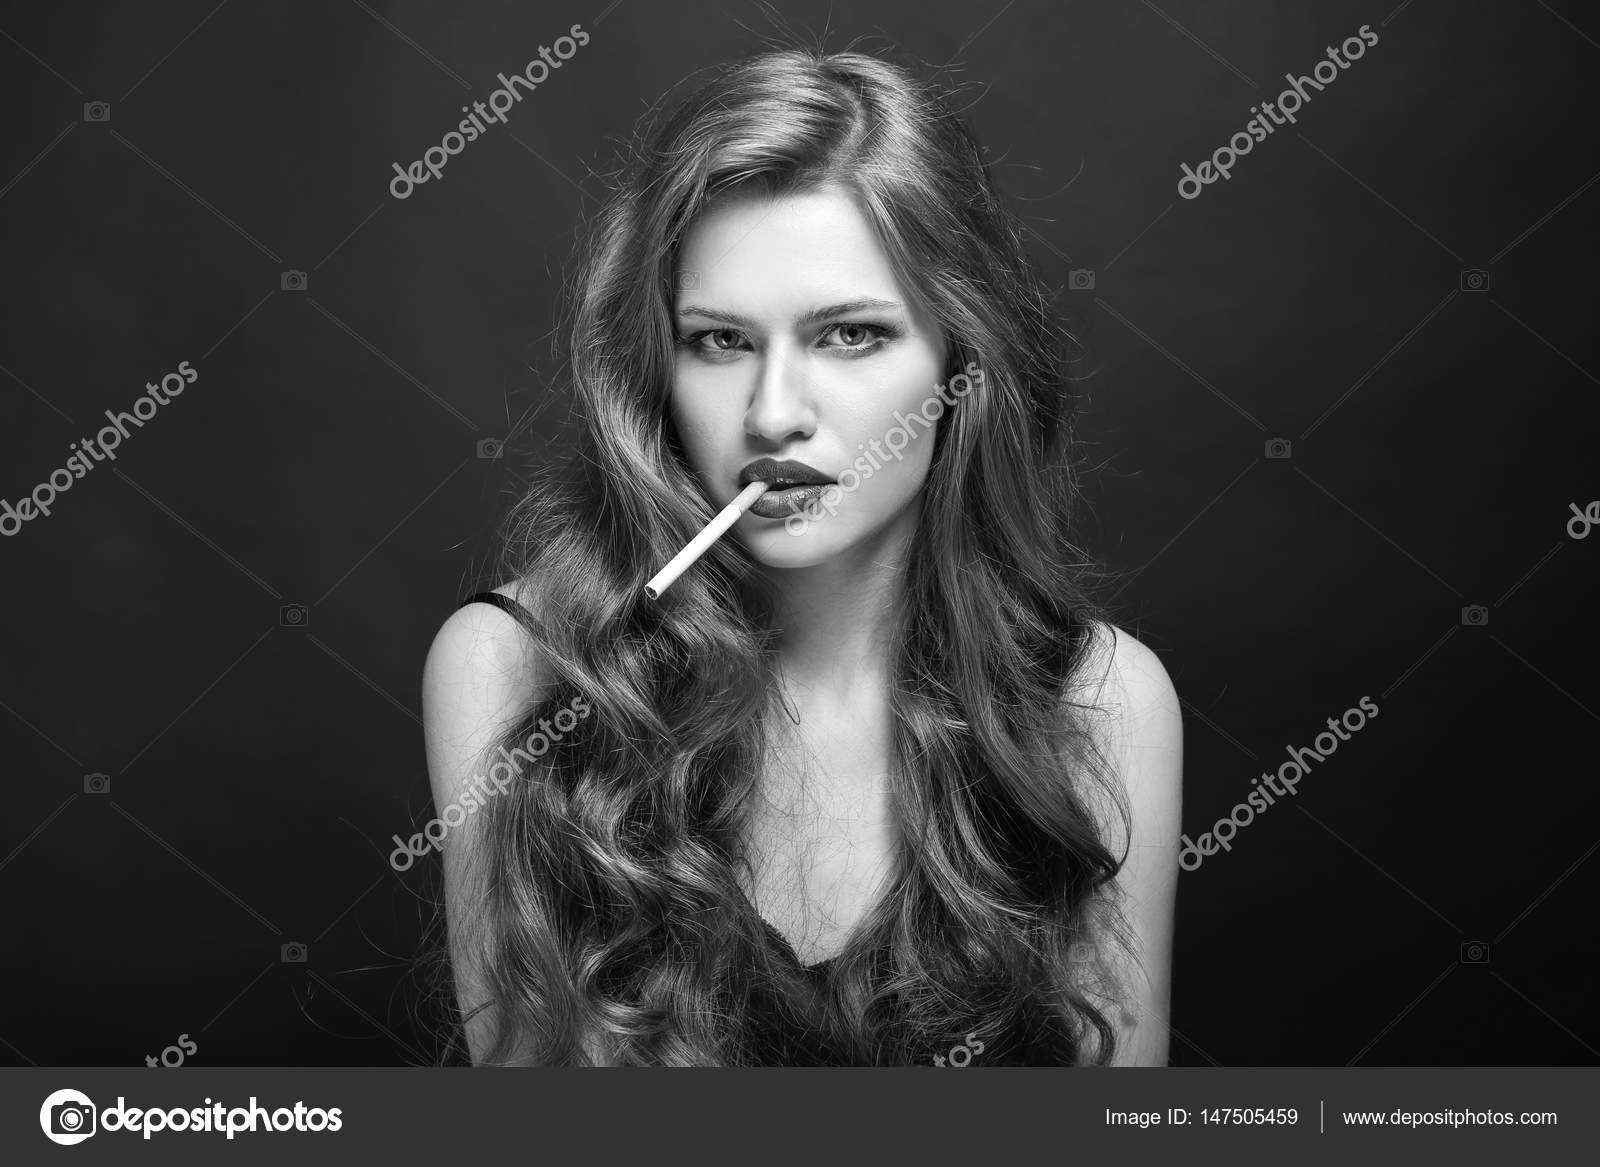 https://st3.depositphotos.com/1177973/14750/i/1600/depositphotos_147505459-stock-photo-beautiful-woman-with-cigarette.jpg